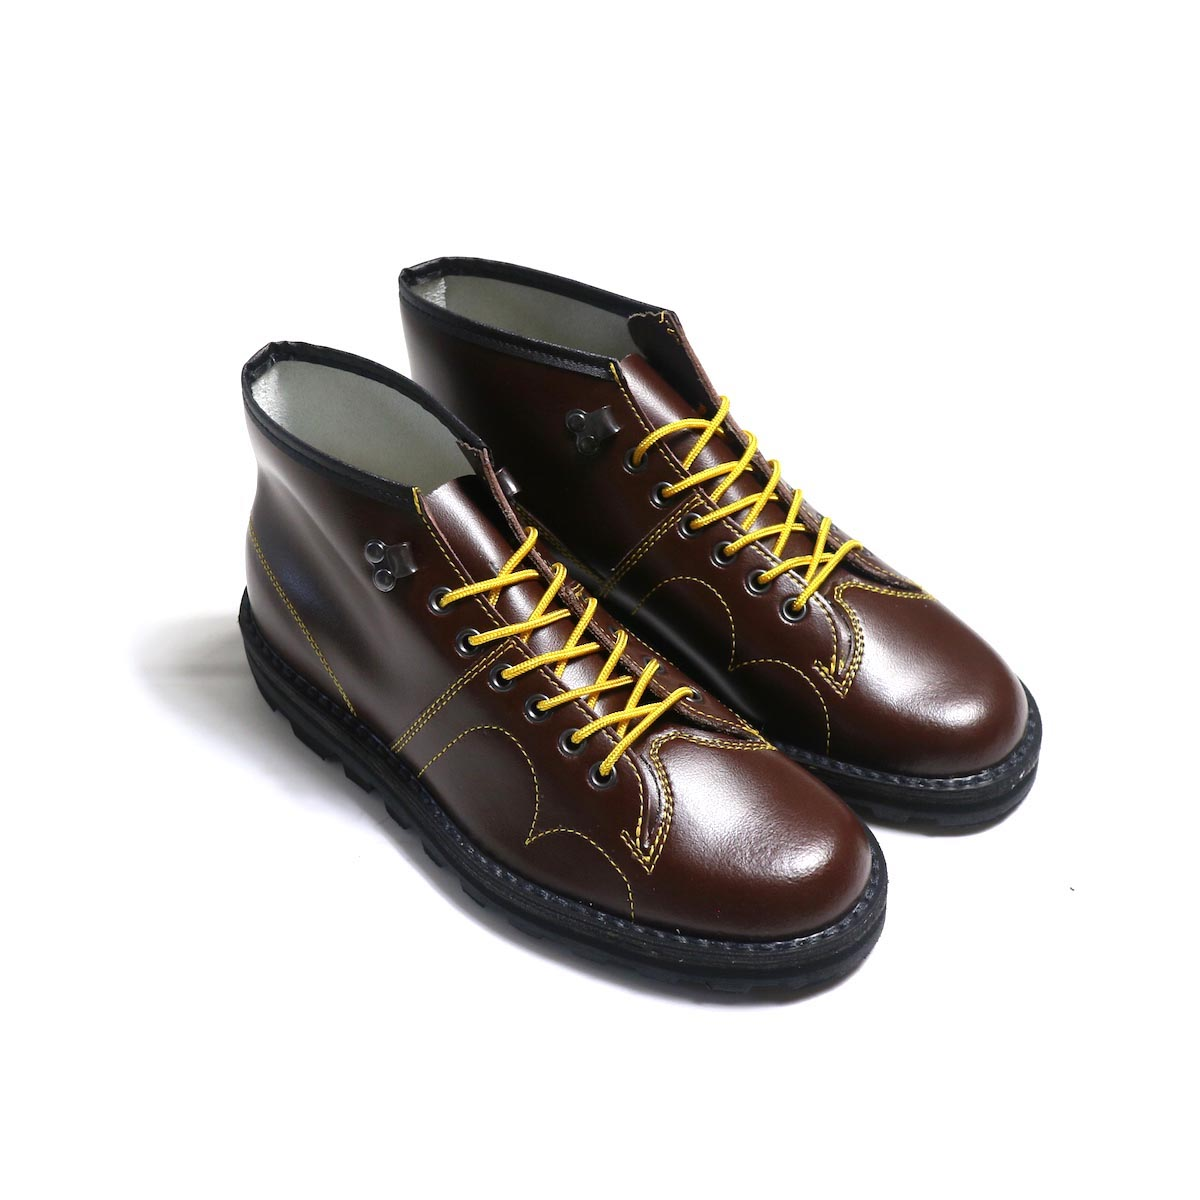 REPRODUCTION OF FOUND / CZECHO SLOVAKIA MILITARY BOOTS -BROWN